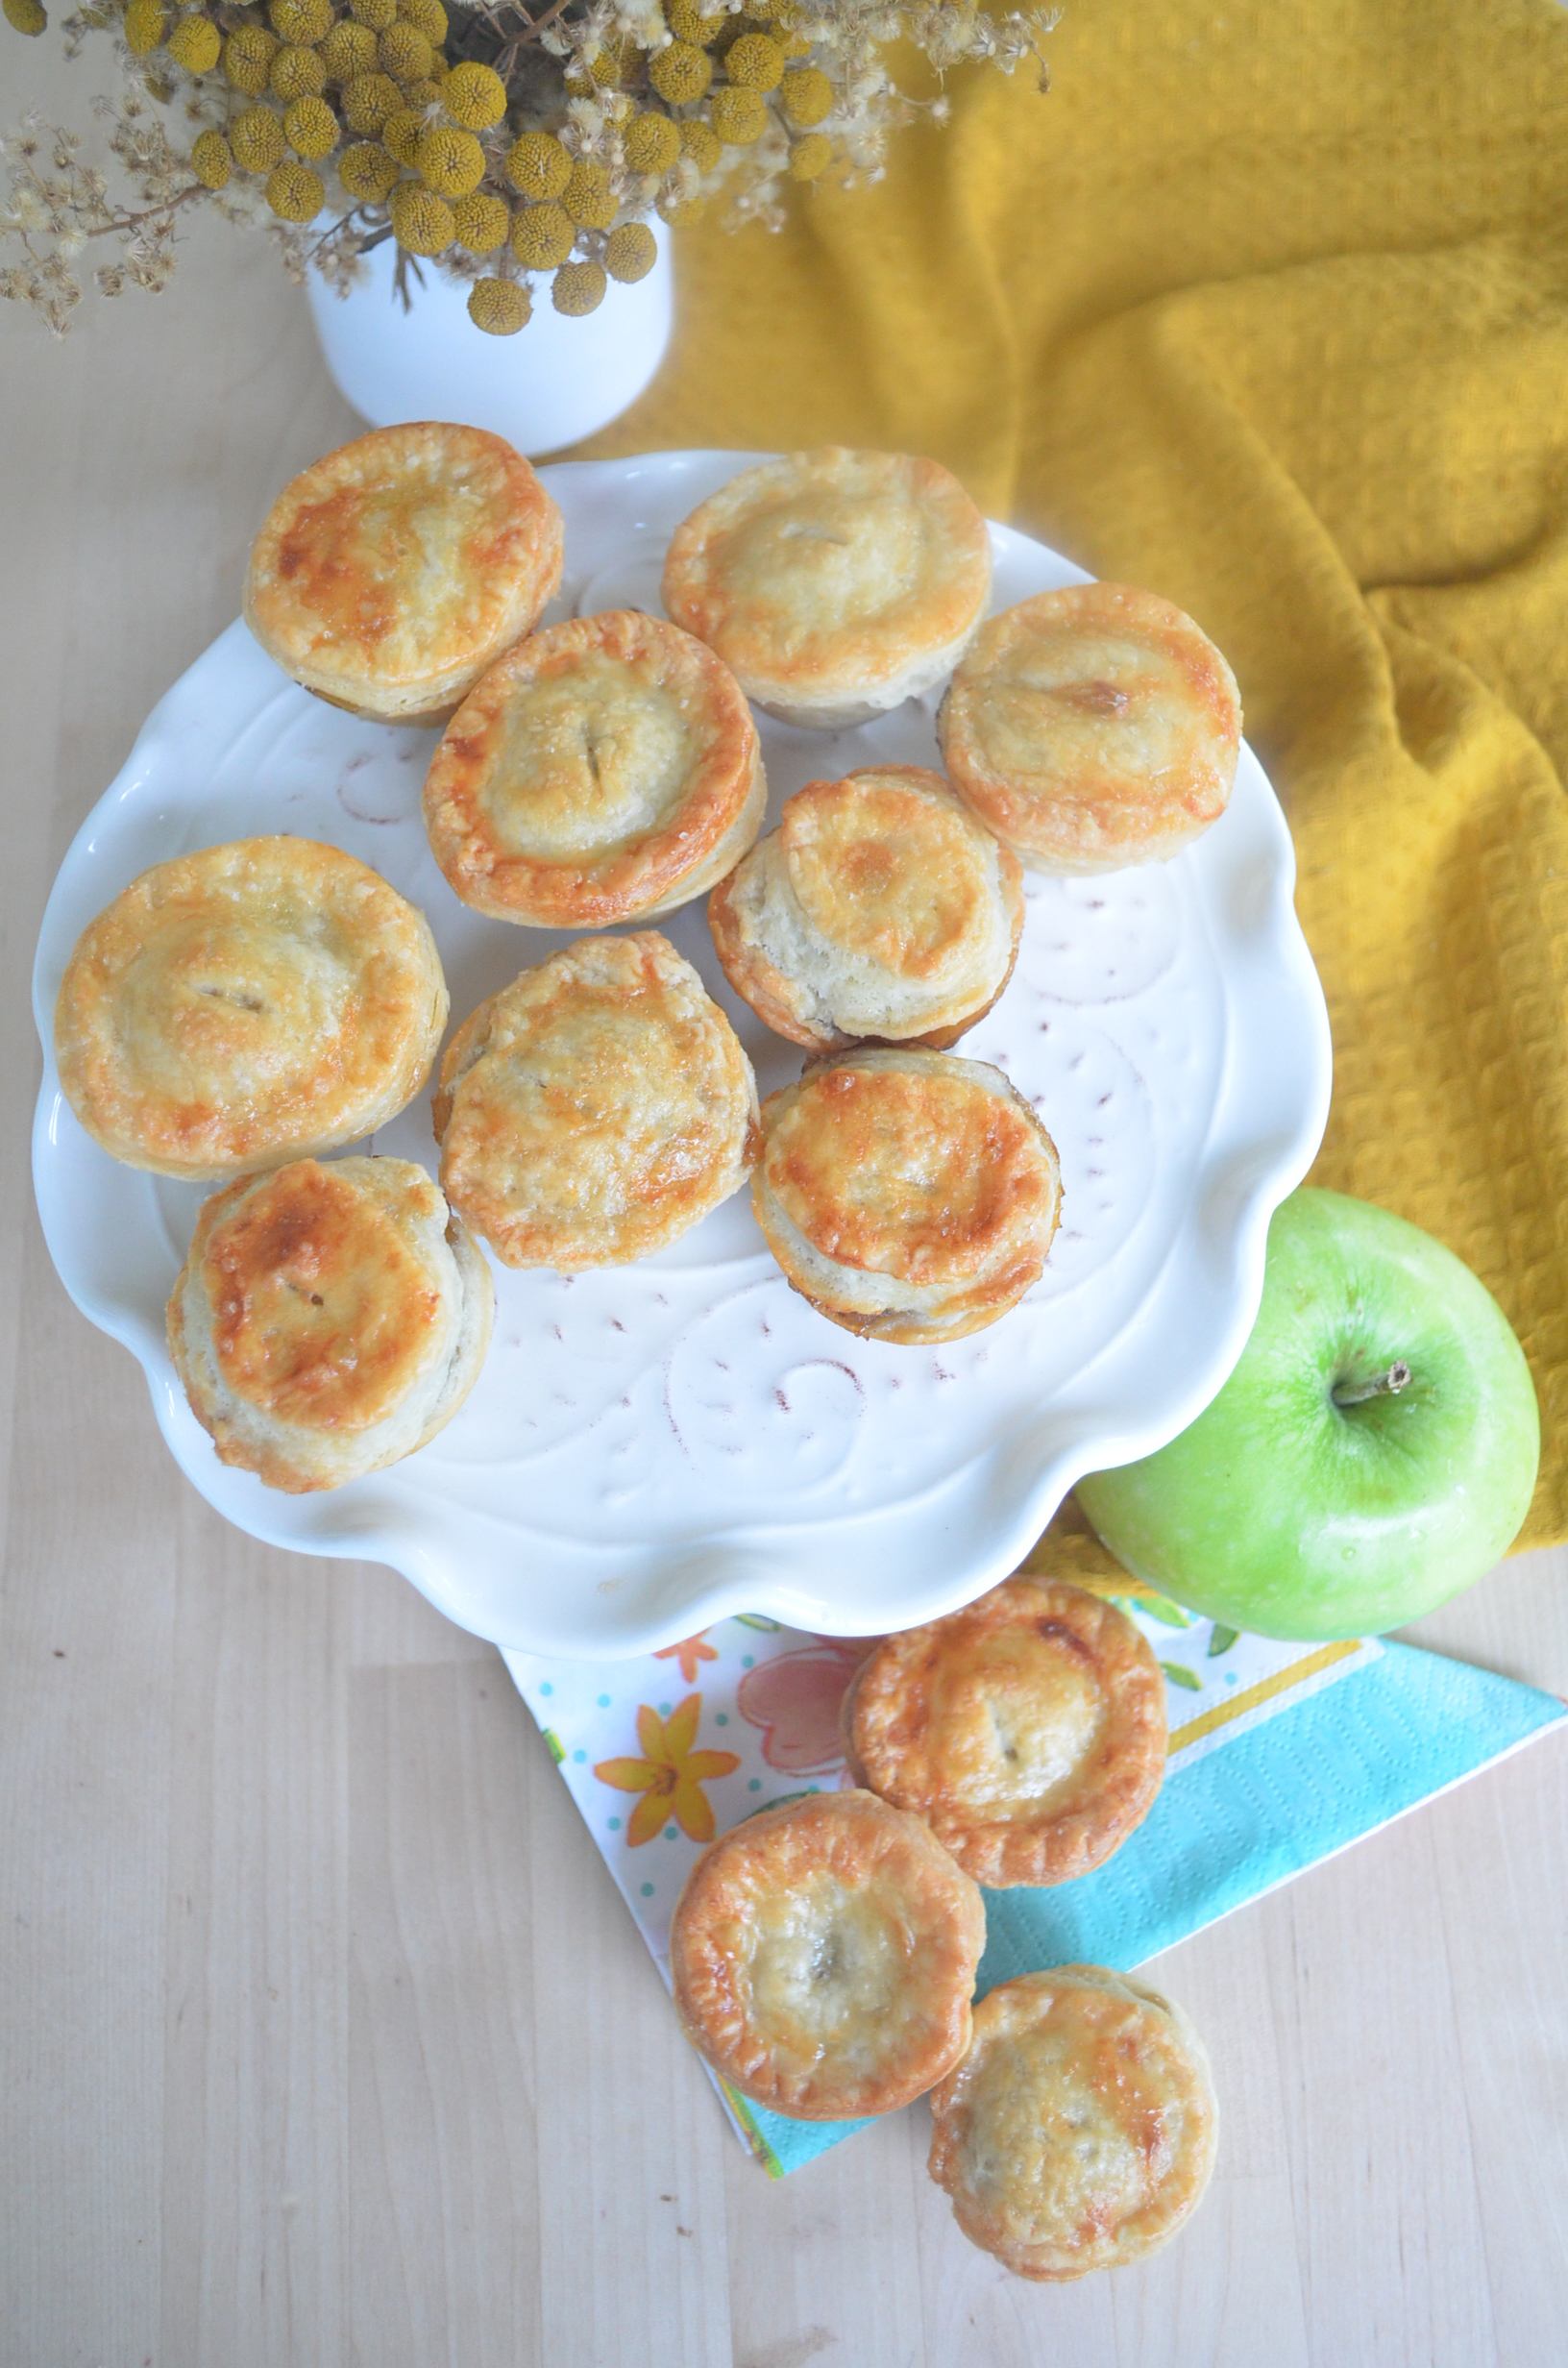 Bite Size Apple Pie recipe By SweetnSpicyliving